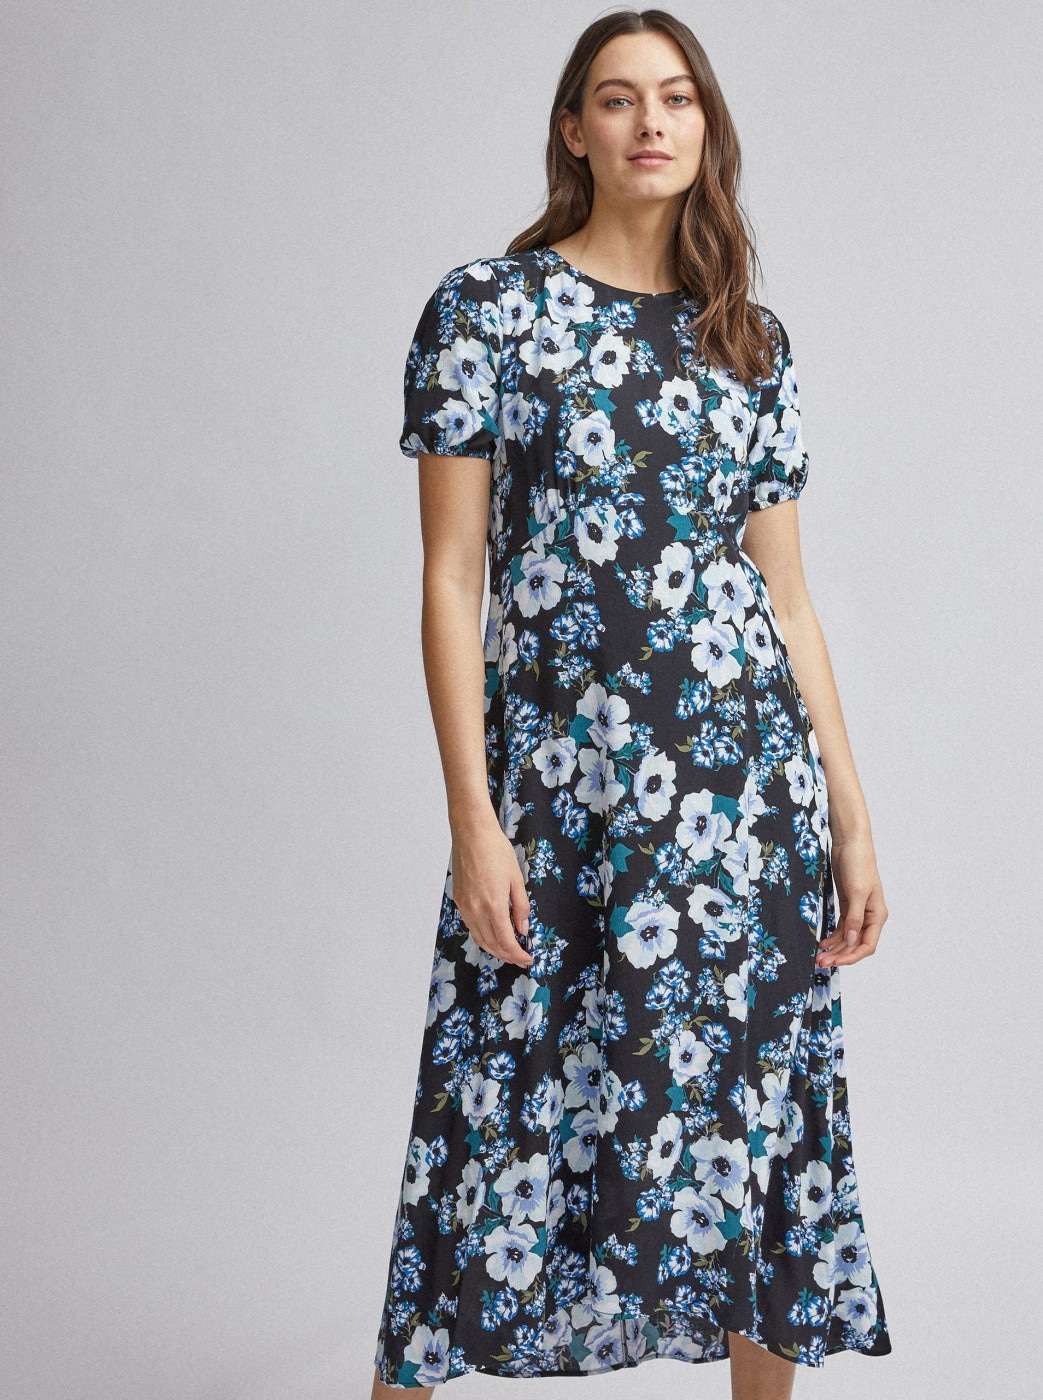 Black Floral Maxi Dress by Dorothy Perkins